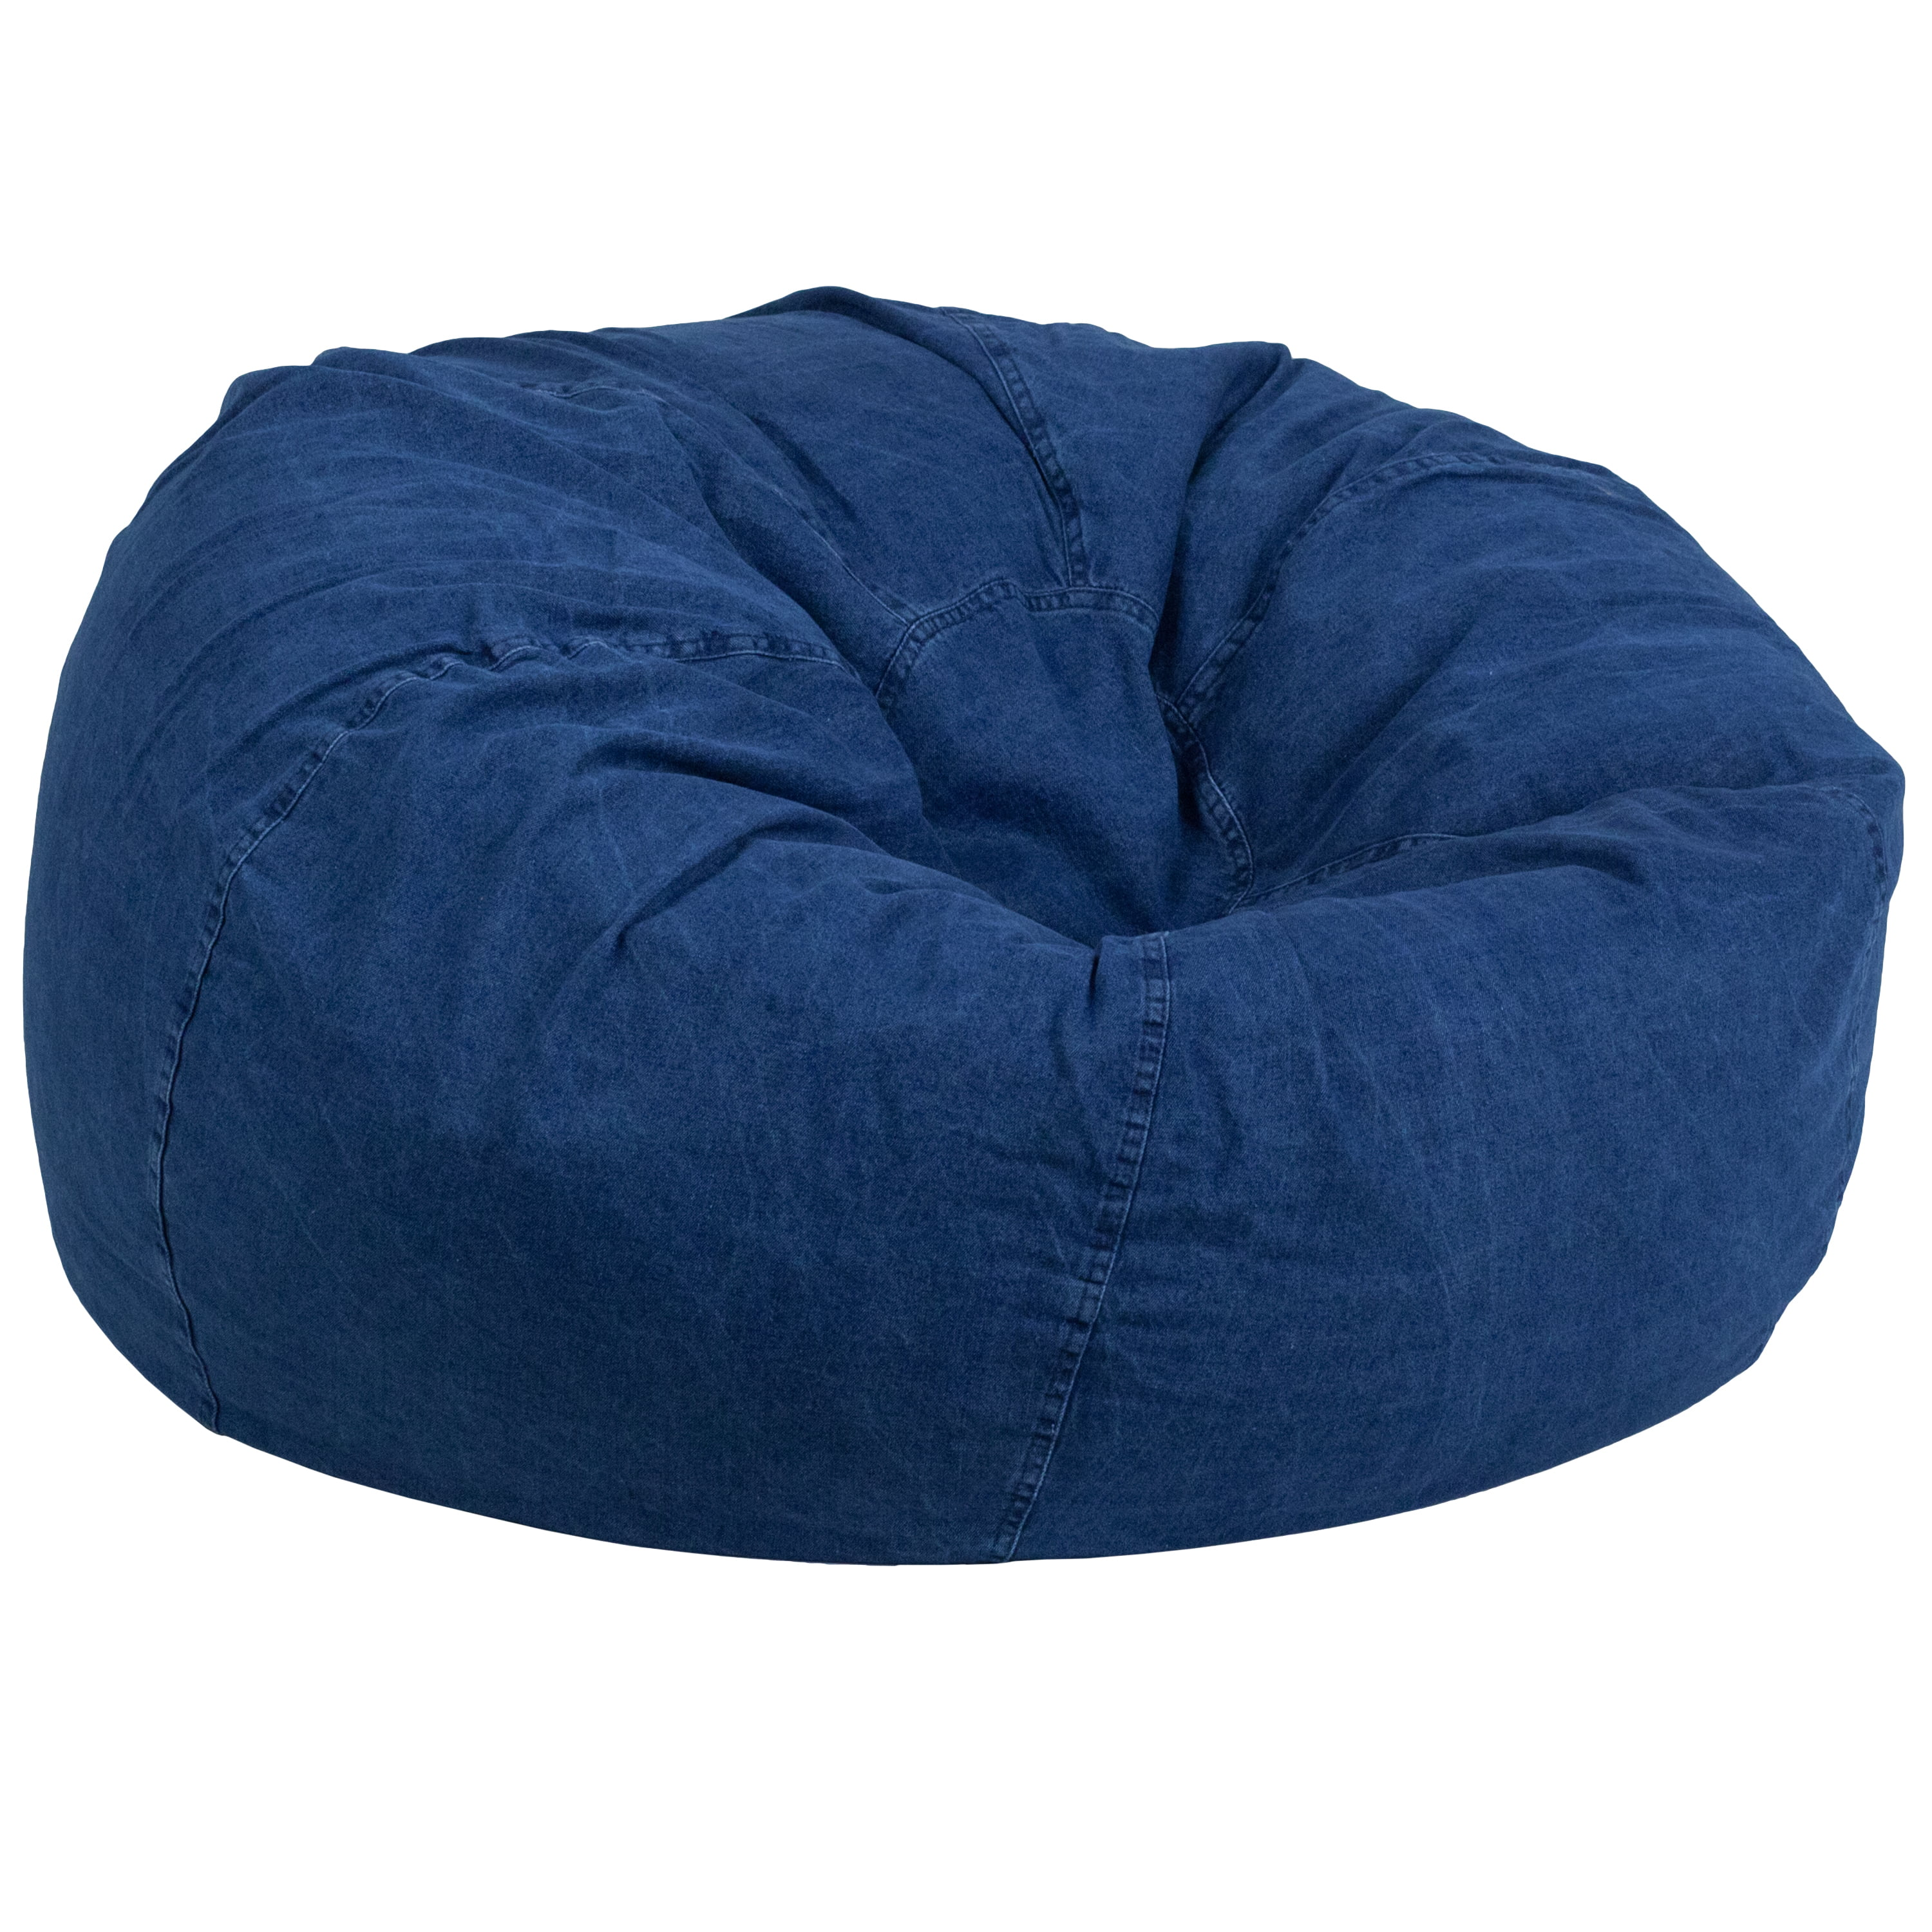 Flash Furniture Oversized Bean Bag Chair Multiple Colors